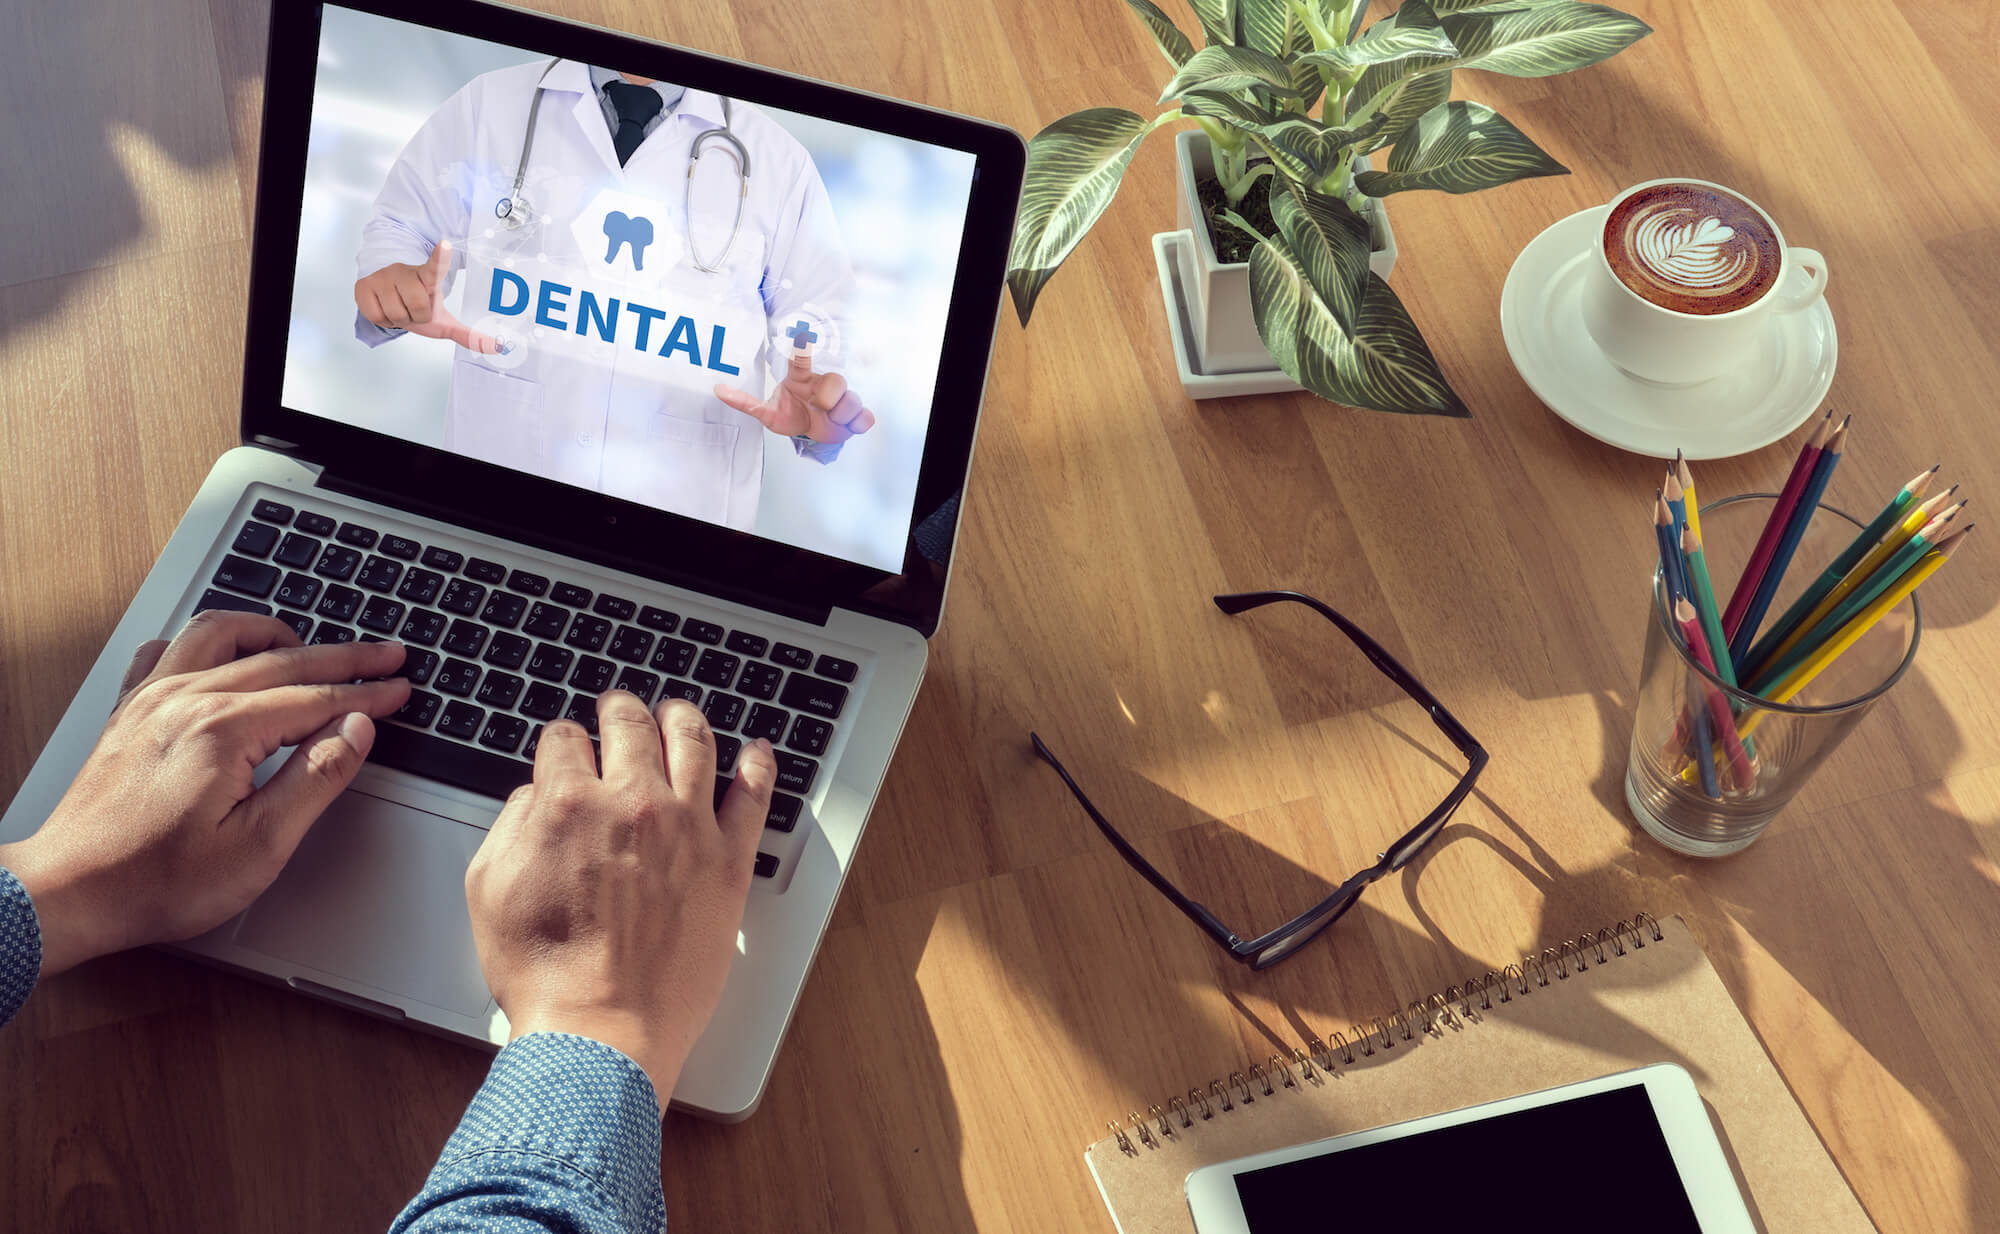 Quality Dental Websites Don't Need to be Complicated